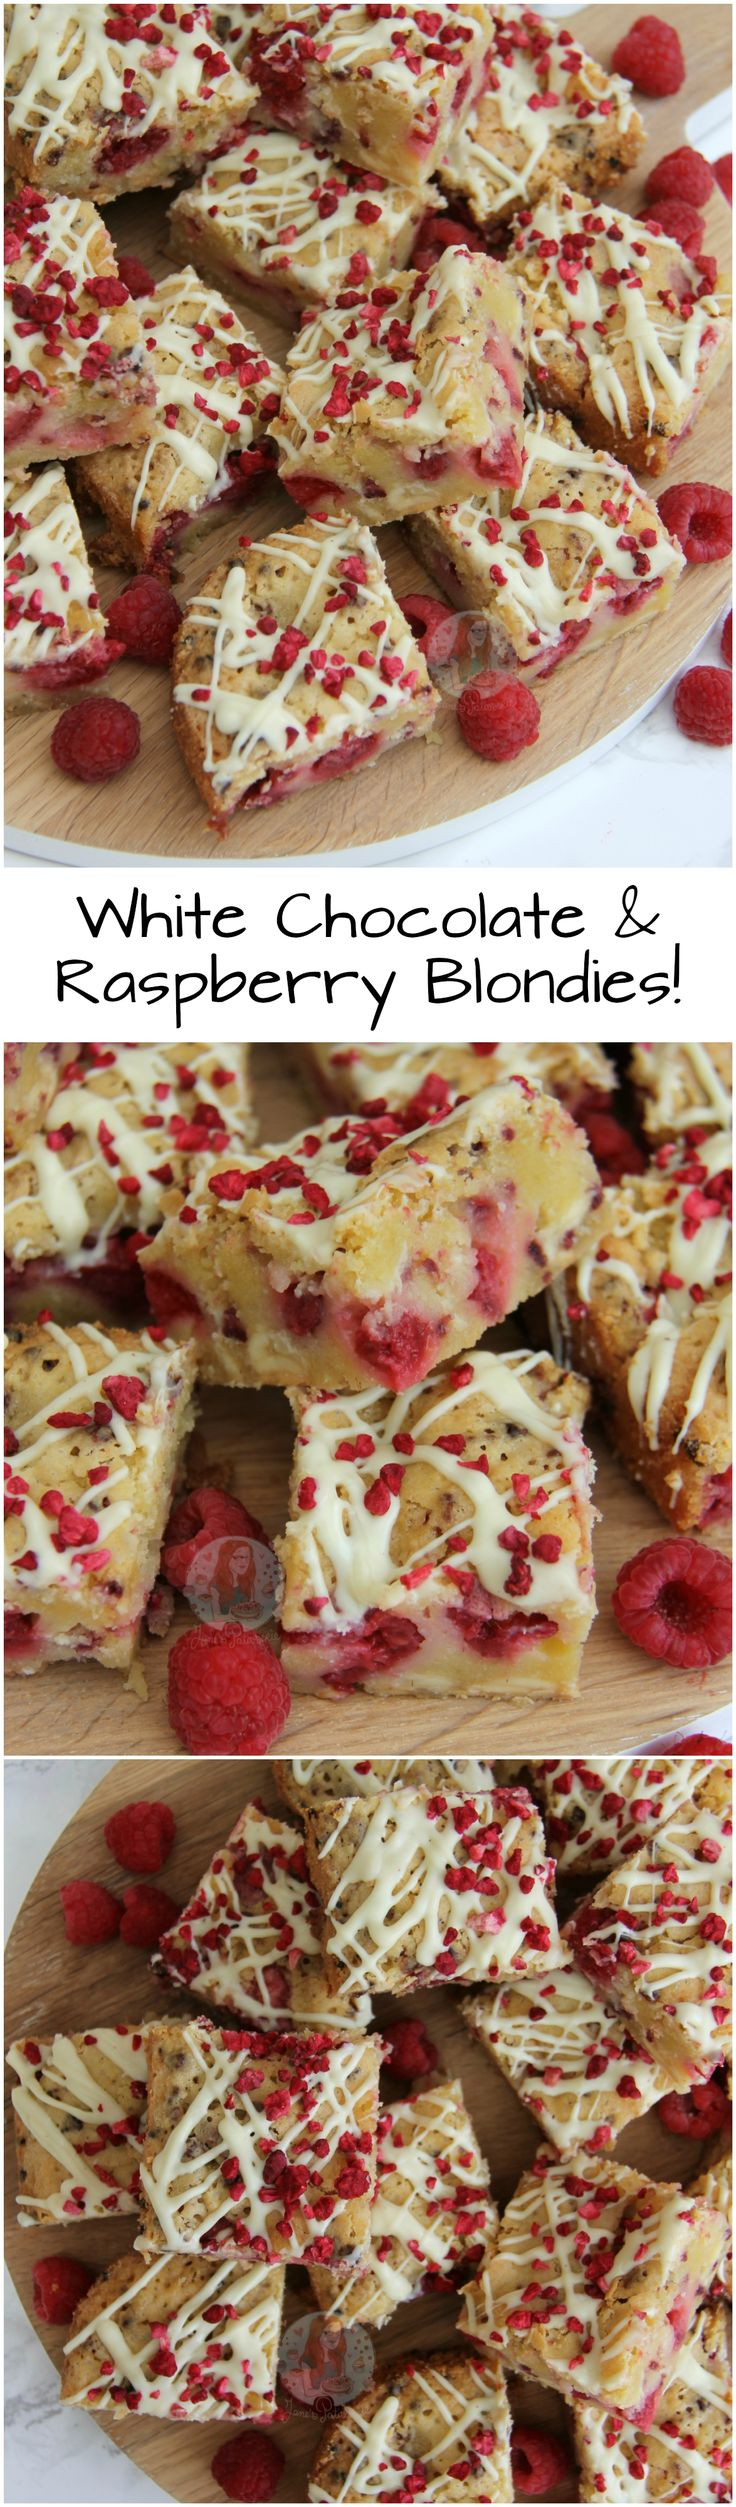 White Chocolate & Raspberry Blondies! ?? Easy, Delicious, Fruity and Chocolatey… What more could you want?! White Chocolate and Raspberry Blondies that everyone will adore and love! (no bake bars easy)